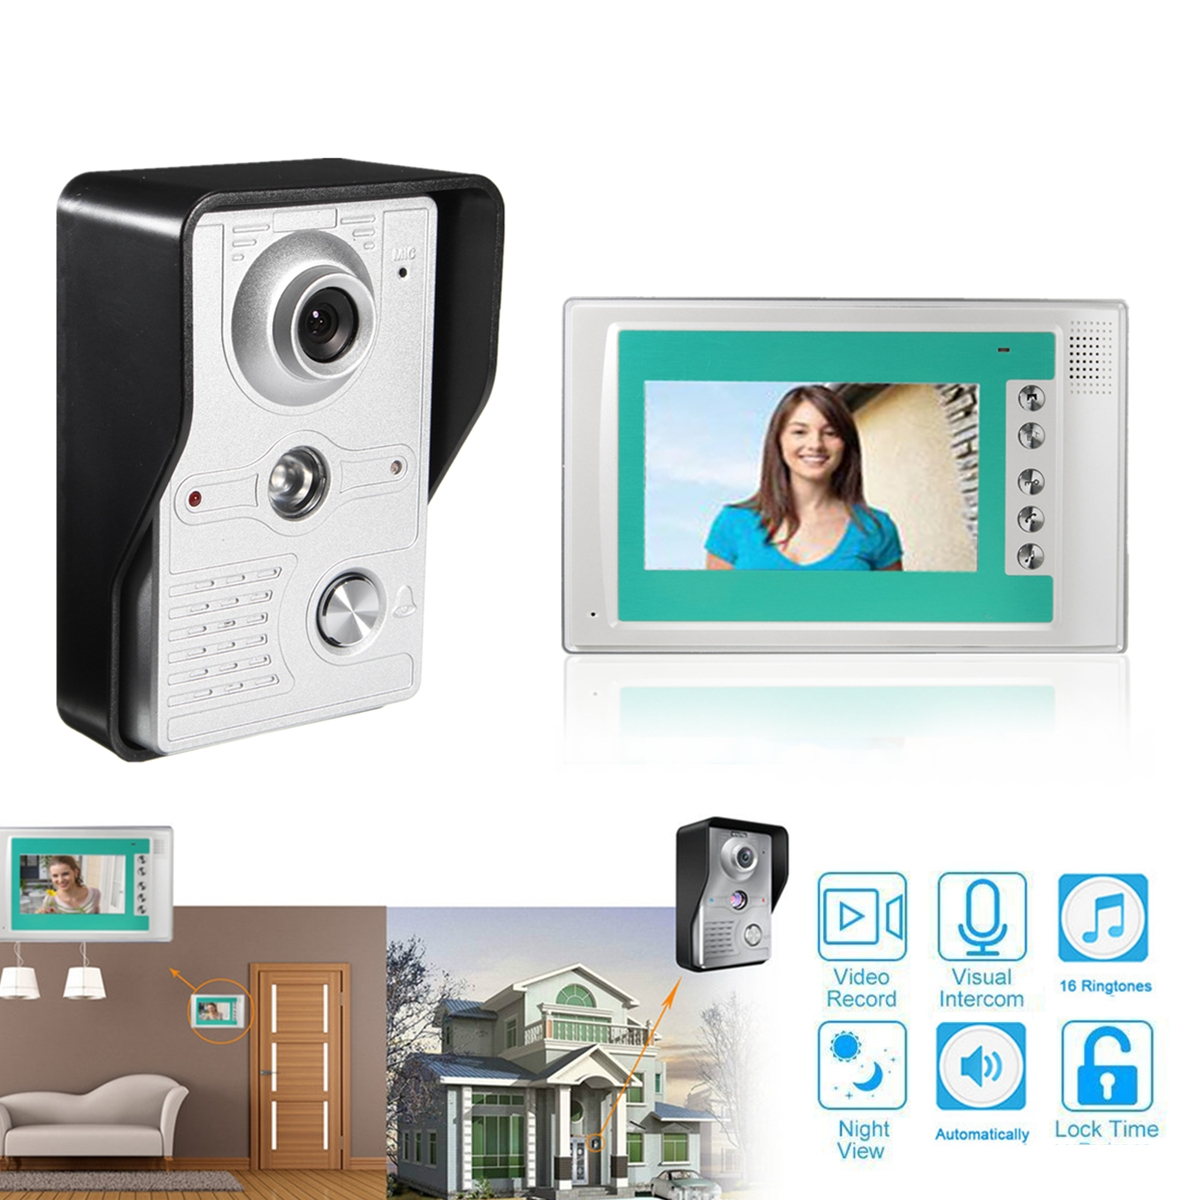 Digital Peephole Door Viewer 7inch Front Video Door Peephole Camera Doorbell with Intercom Unlocking Auto-record FunctionDigital Peephole Door Viewer 7inch Front Video Door Peephole Camera Doorbell with Intercom Unlocking Auto-record Function